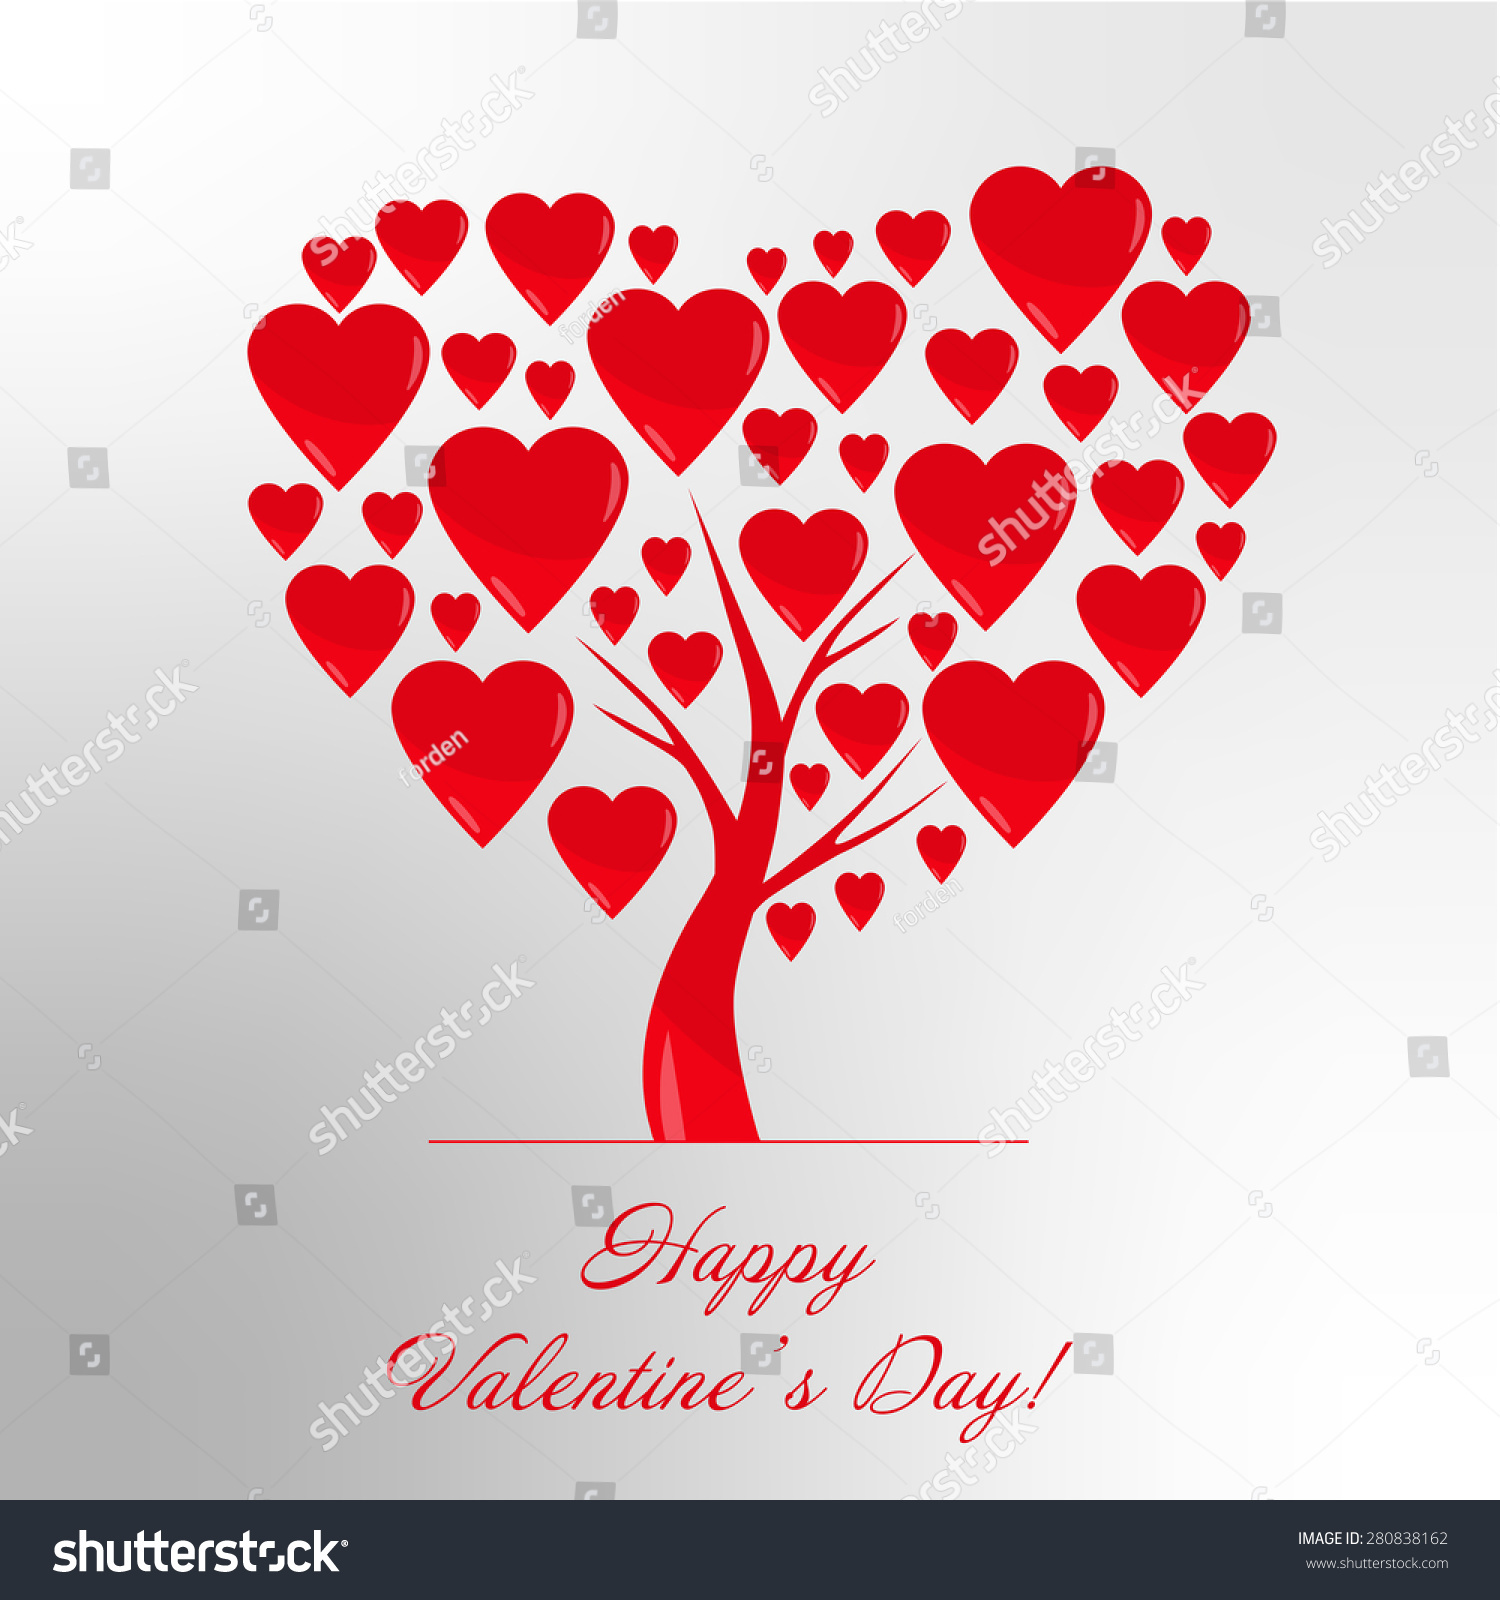 Greeting card words happy valentines day stock illustration greeting card with the words happy valentines day and heart tree with heart raster illustration kristyandbryce Images